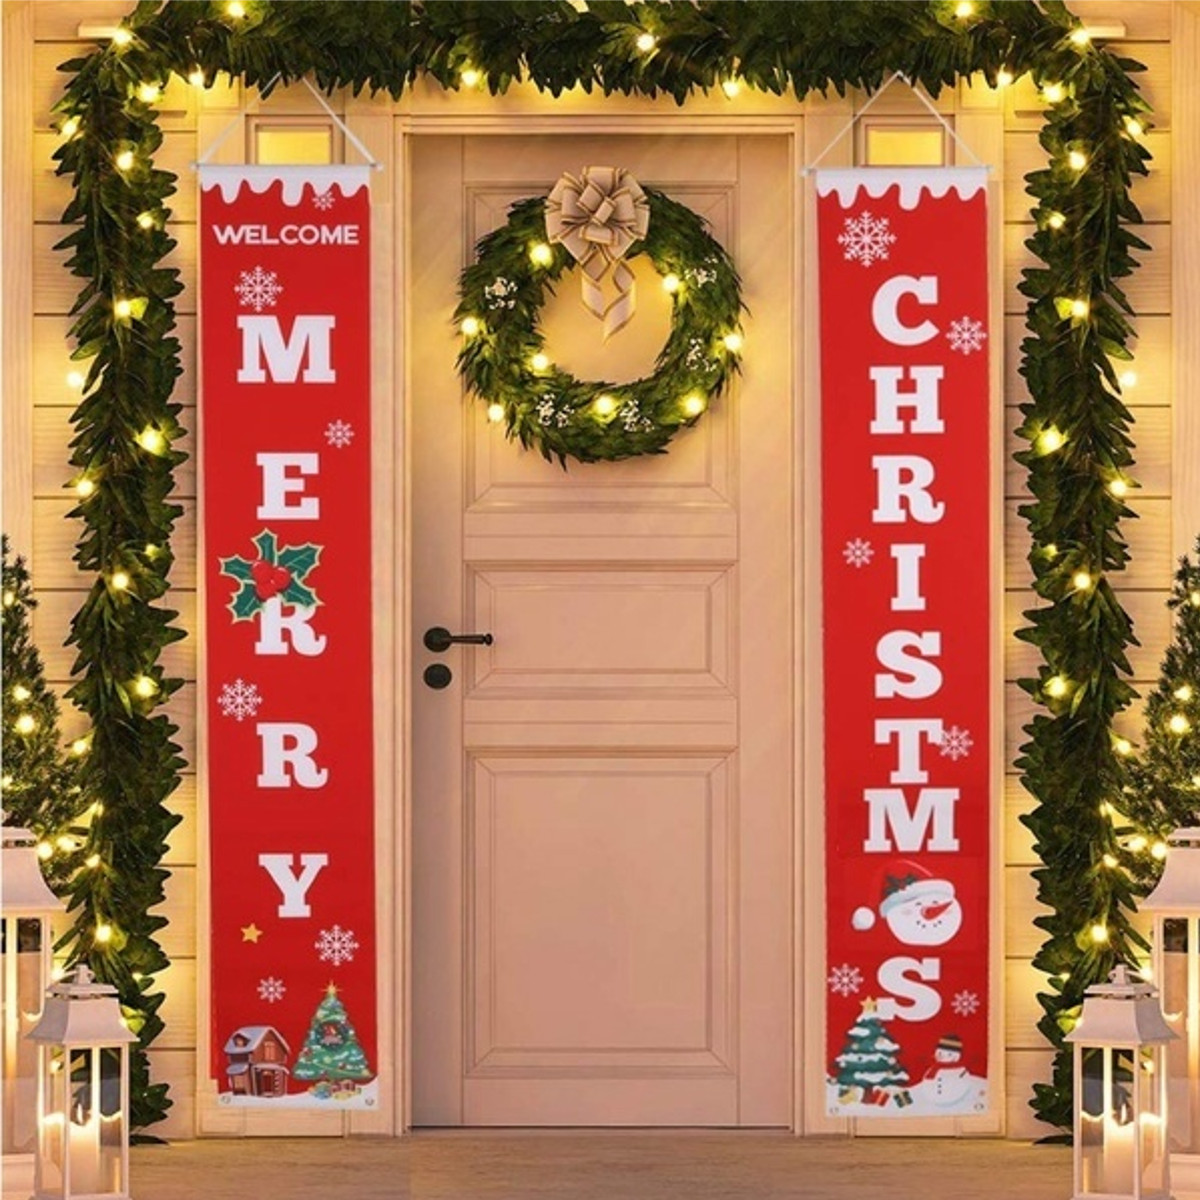 Outdoor Porch Decoration Welcome Sign Christmas Door Banner 71 x 12 Inch for Home Office School Class Yard Wall Display Xmas Holiday Gift Merry Christmas Large Indoor Red Party D/écor Flag